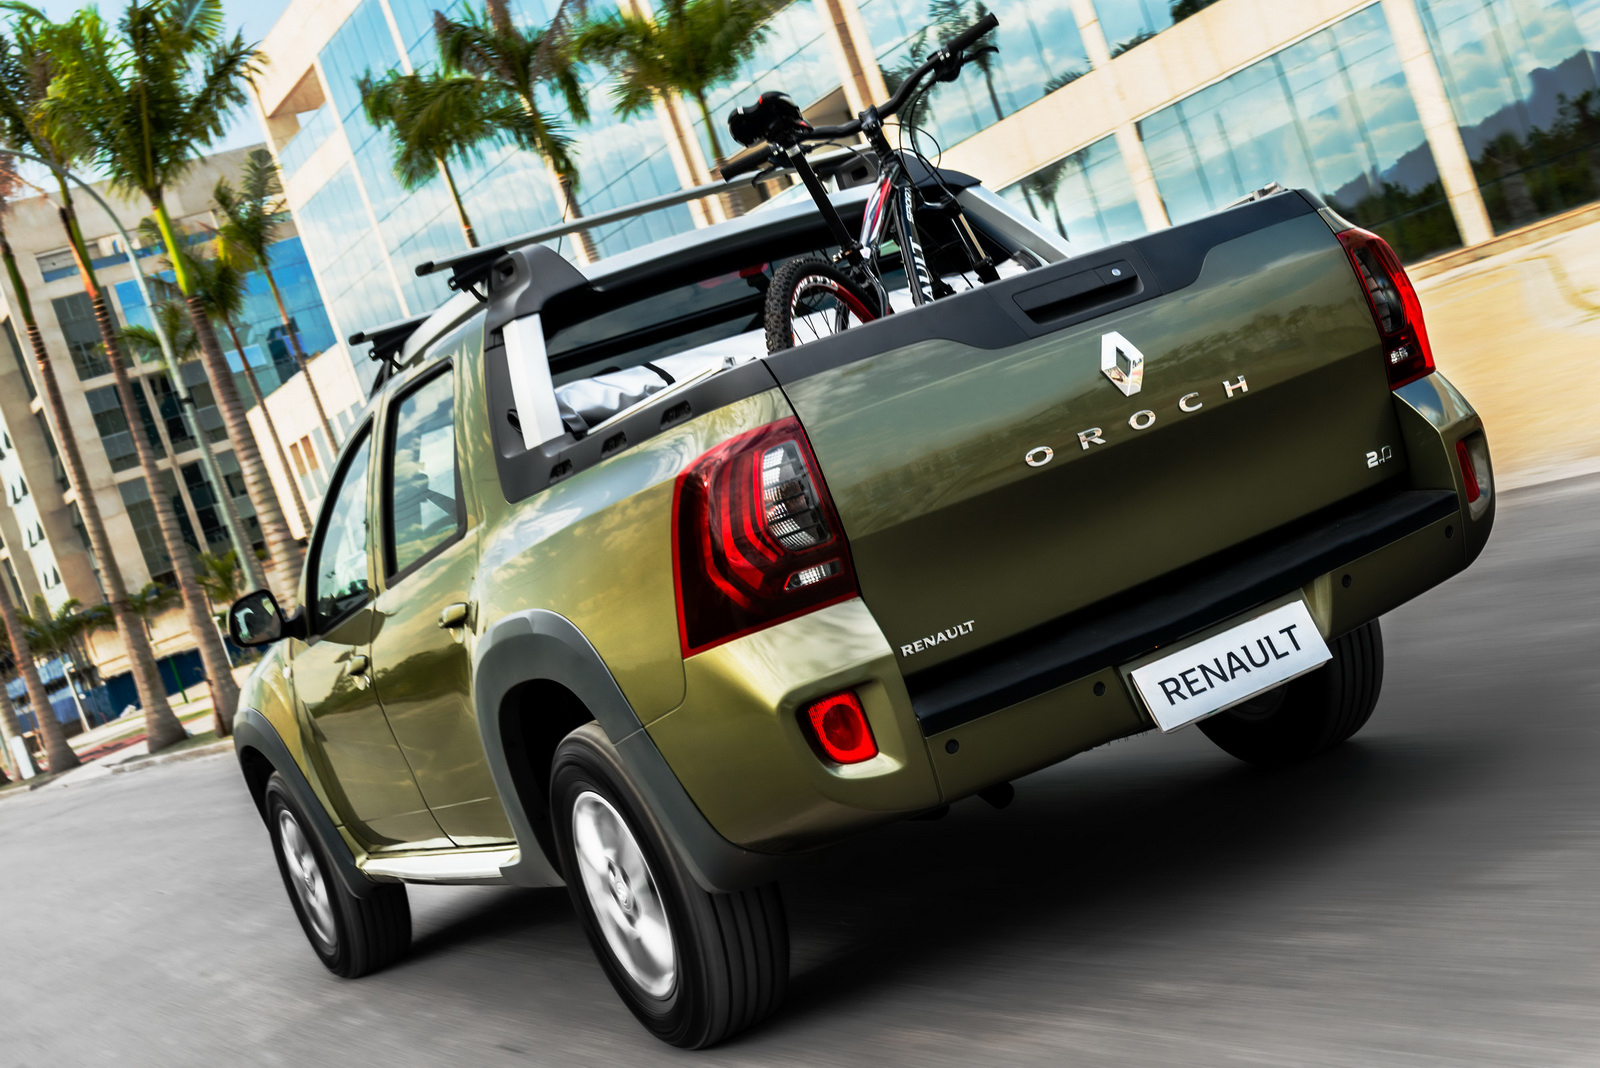 renault duster oroch pick up truck launched in brazil image 385542. Black Bedroom Furniture Sets. Home Design Ideas